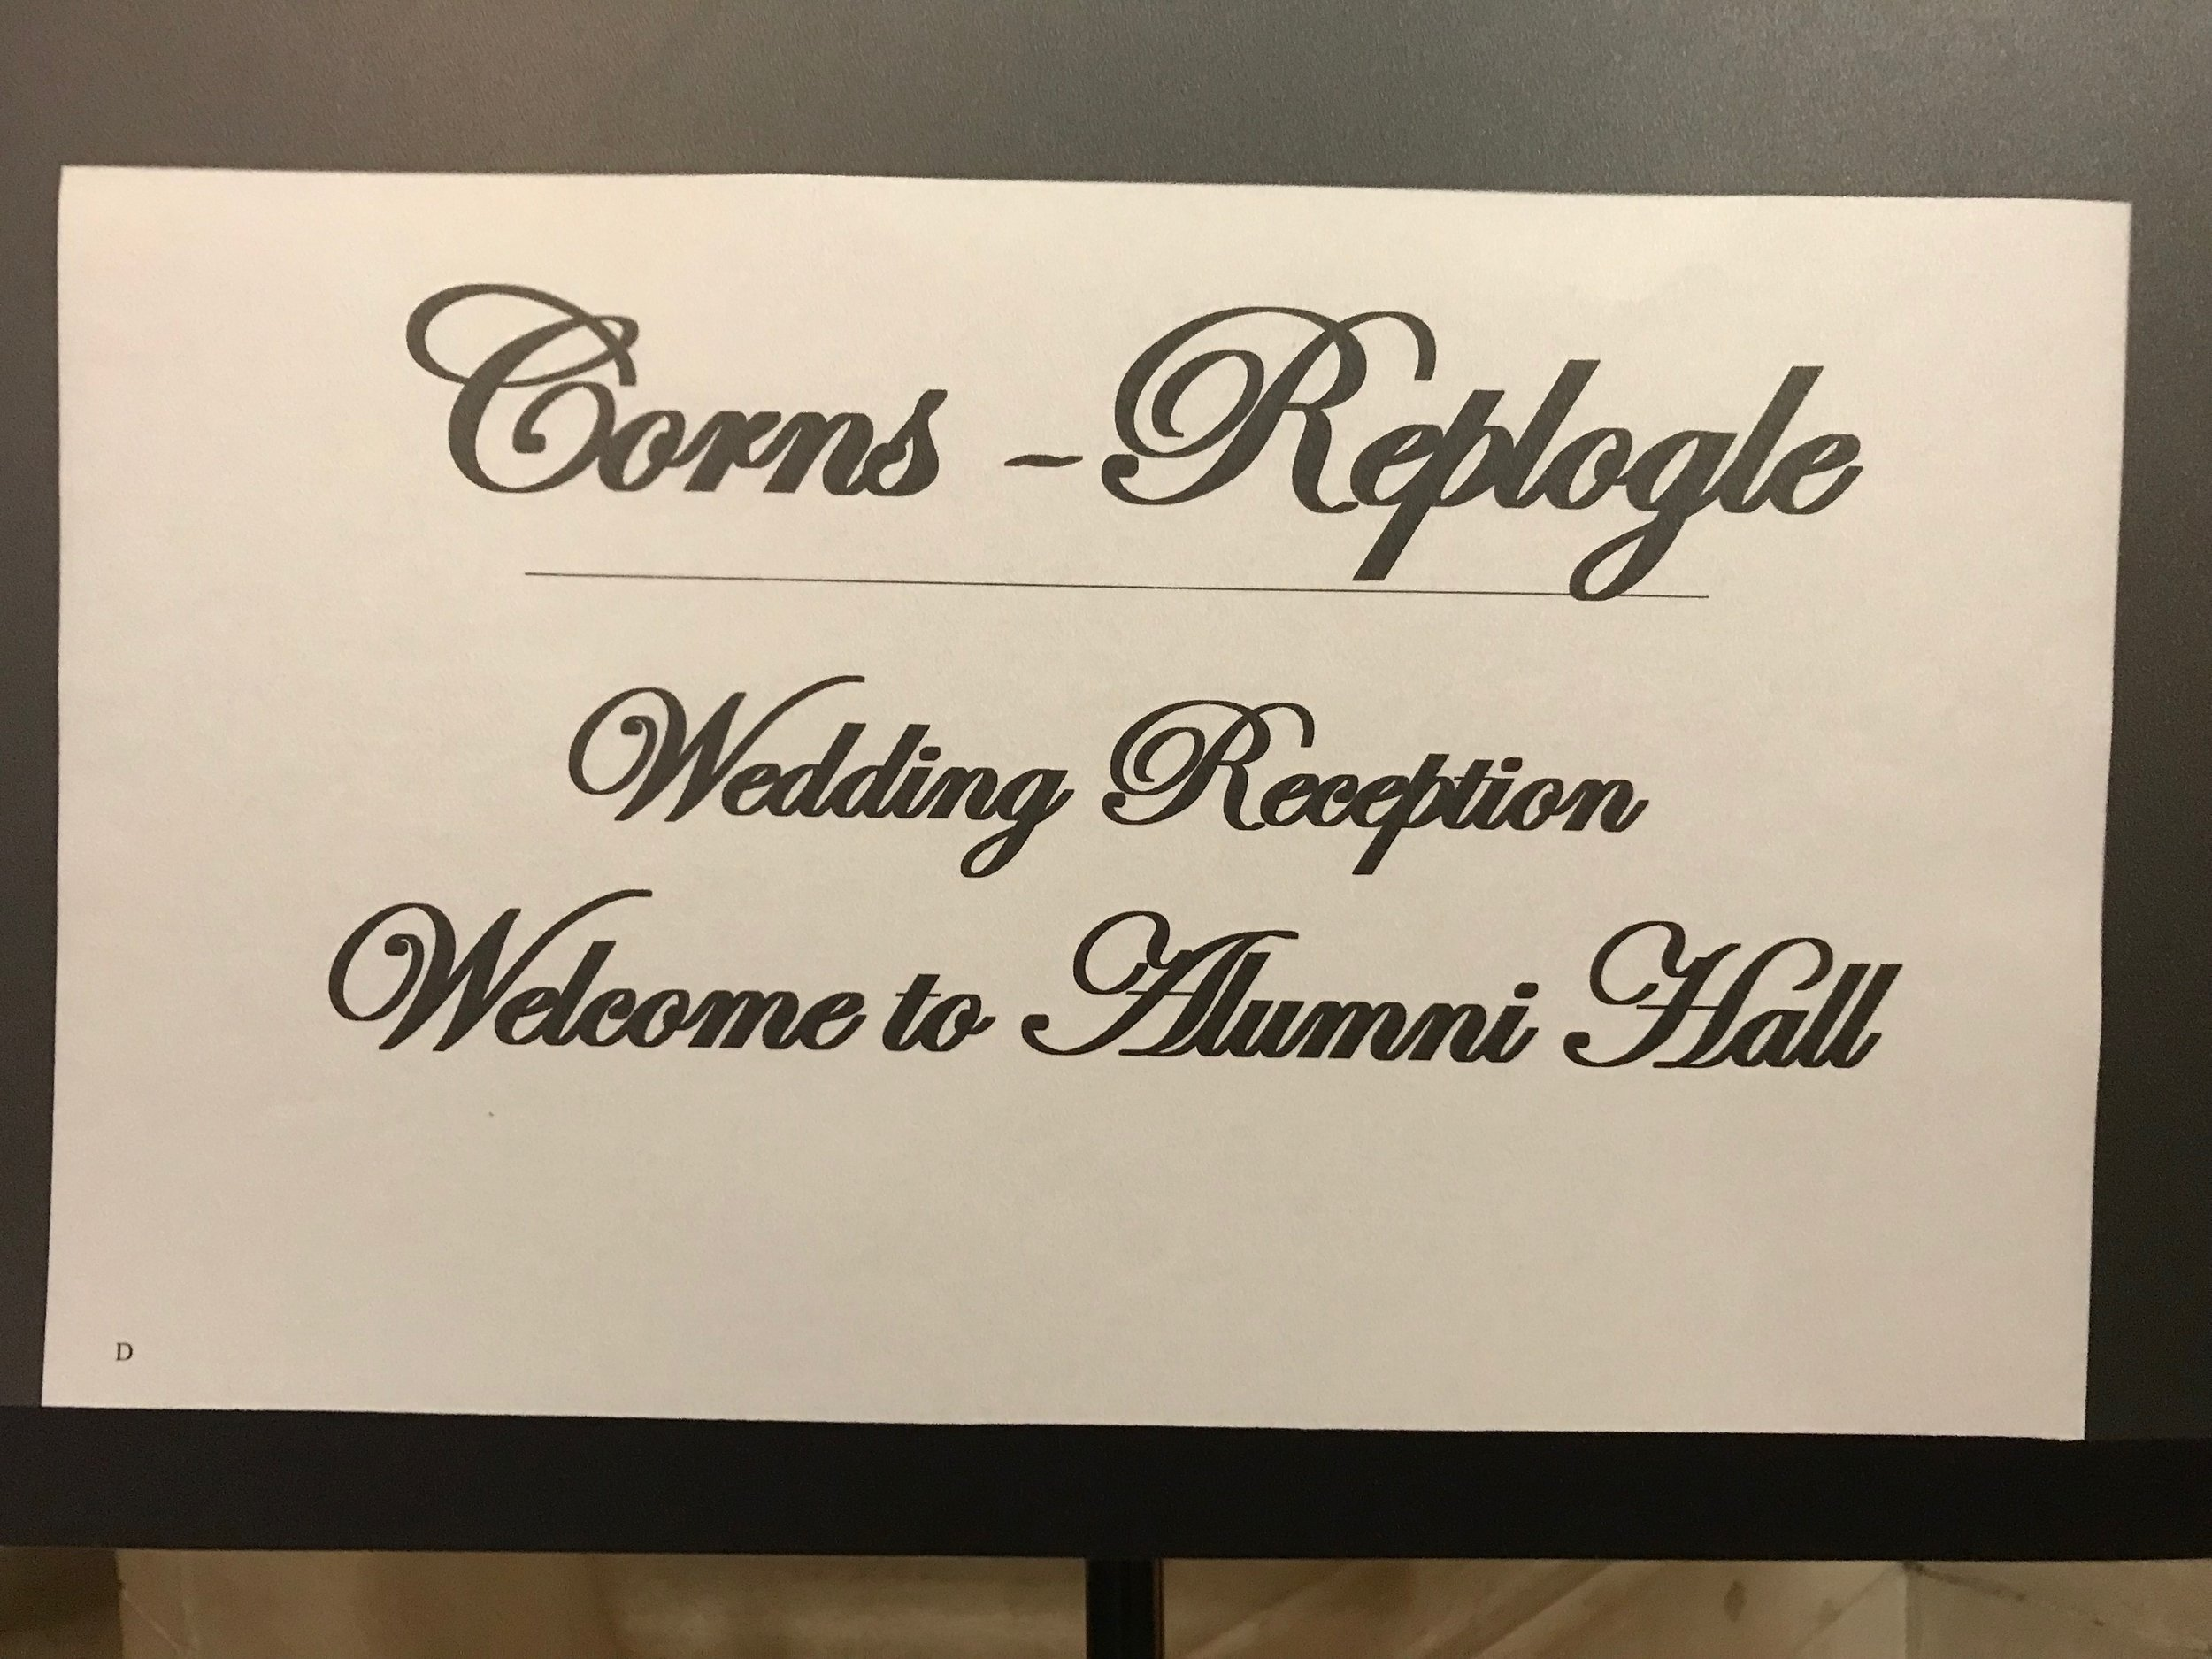 Corns Replogle Wedding by DJ Jim Cerone